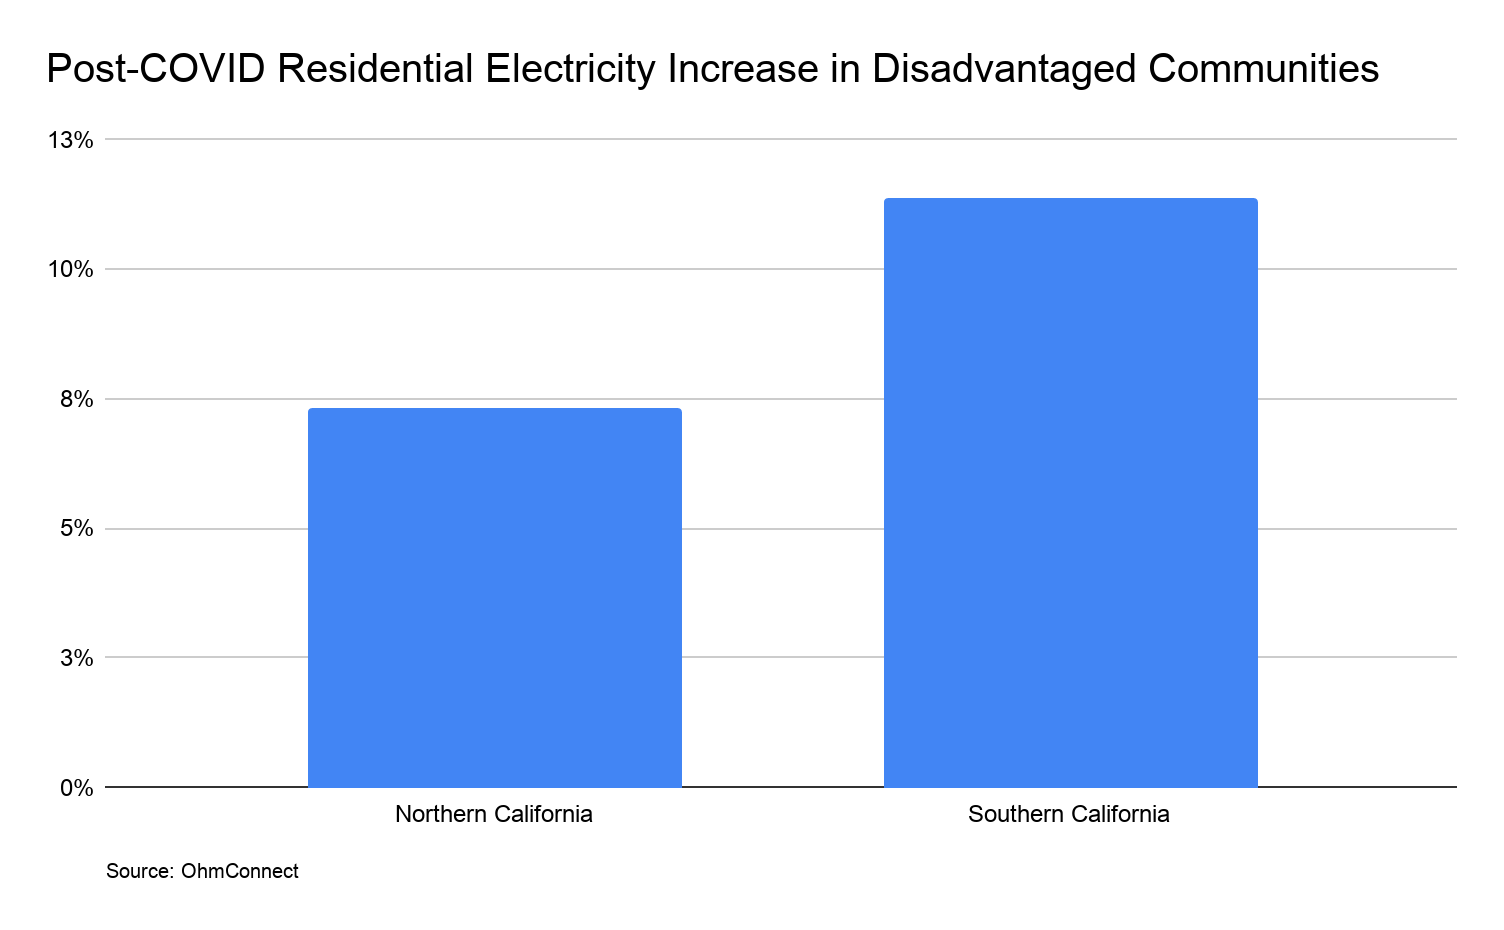 bar chart showing residential electricity increase before and after COVID